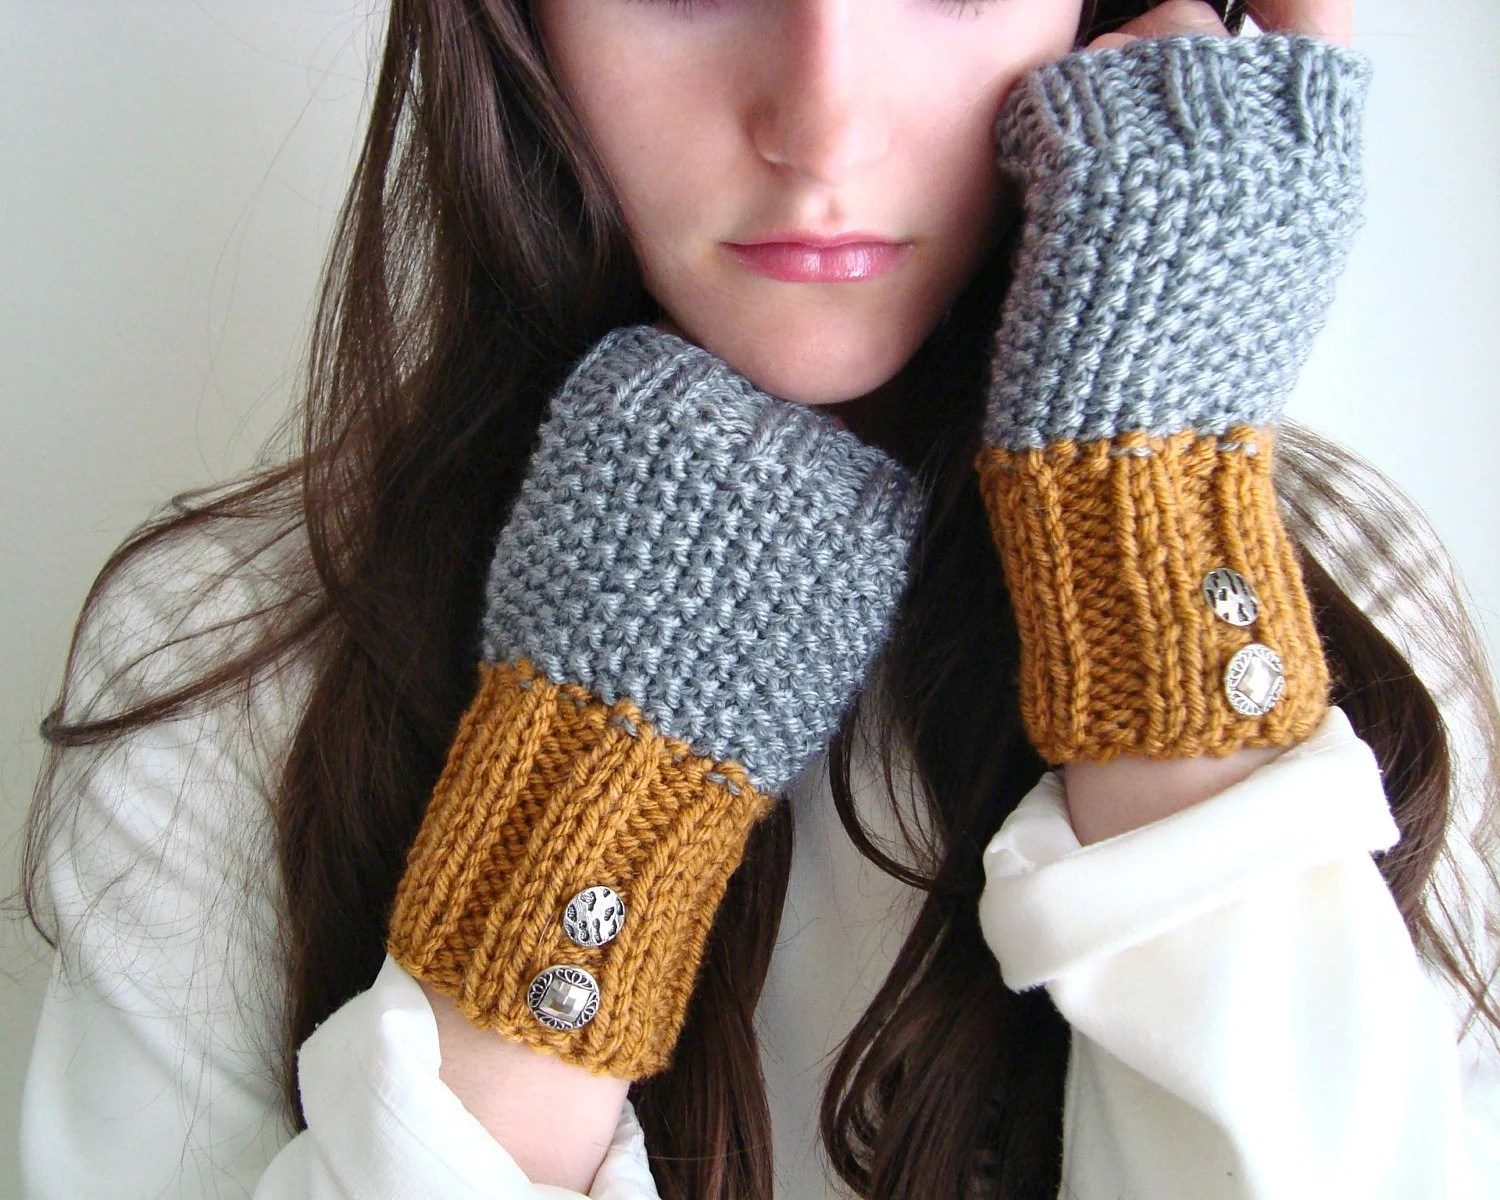 Silver & Gold Autumn Mittens Fingerless Gloves, Vintage Buttons, Grey and Butterscotch - KnittingWonders